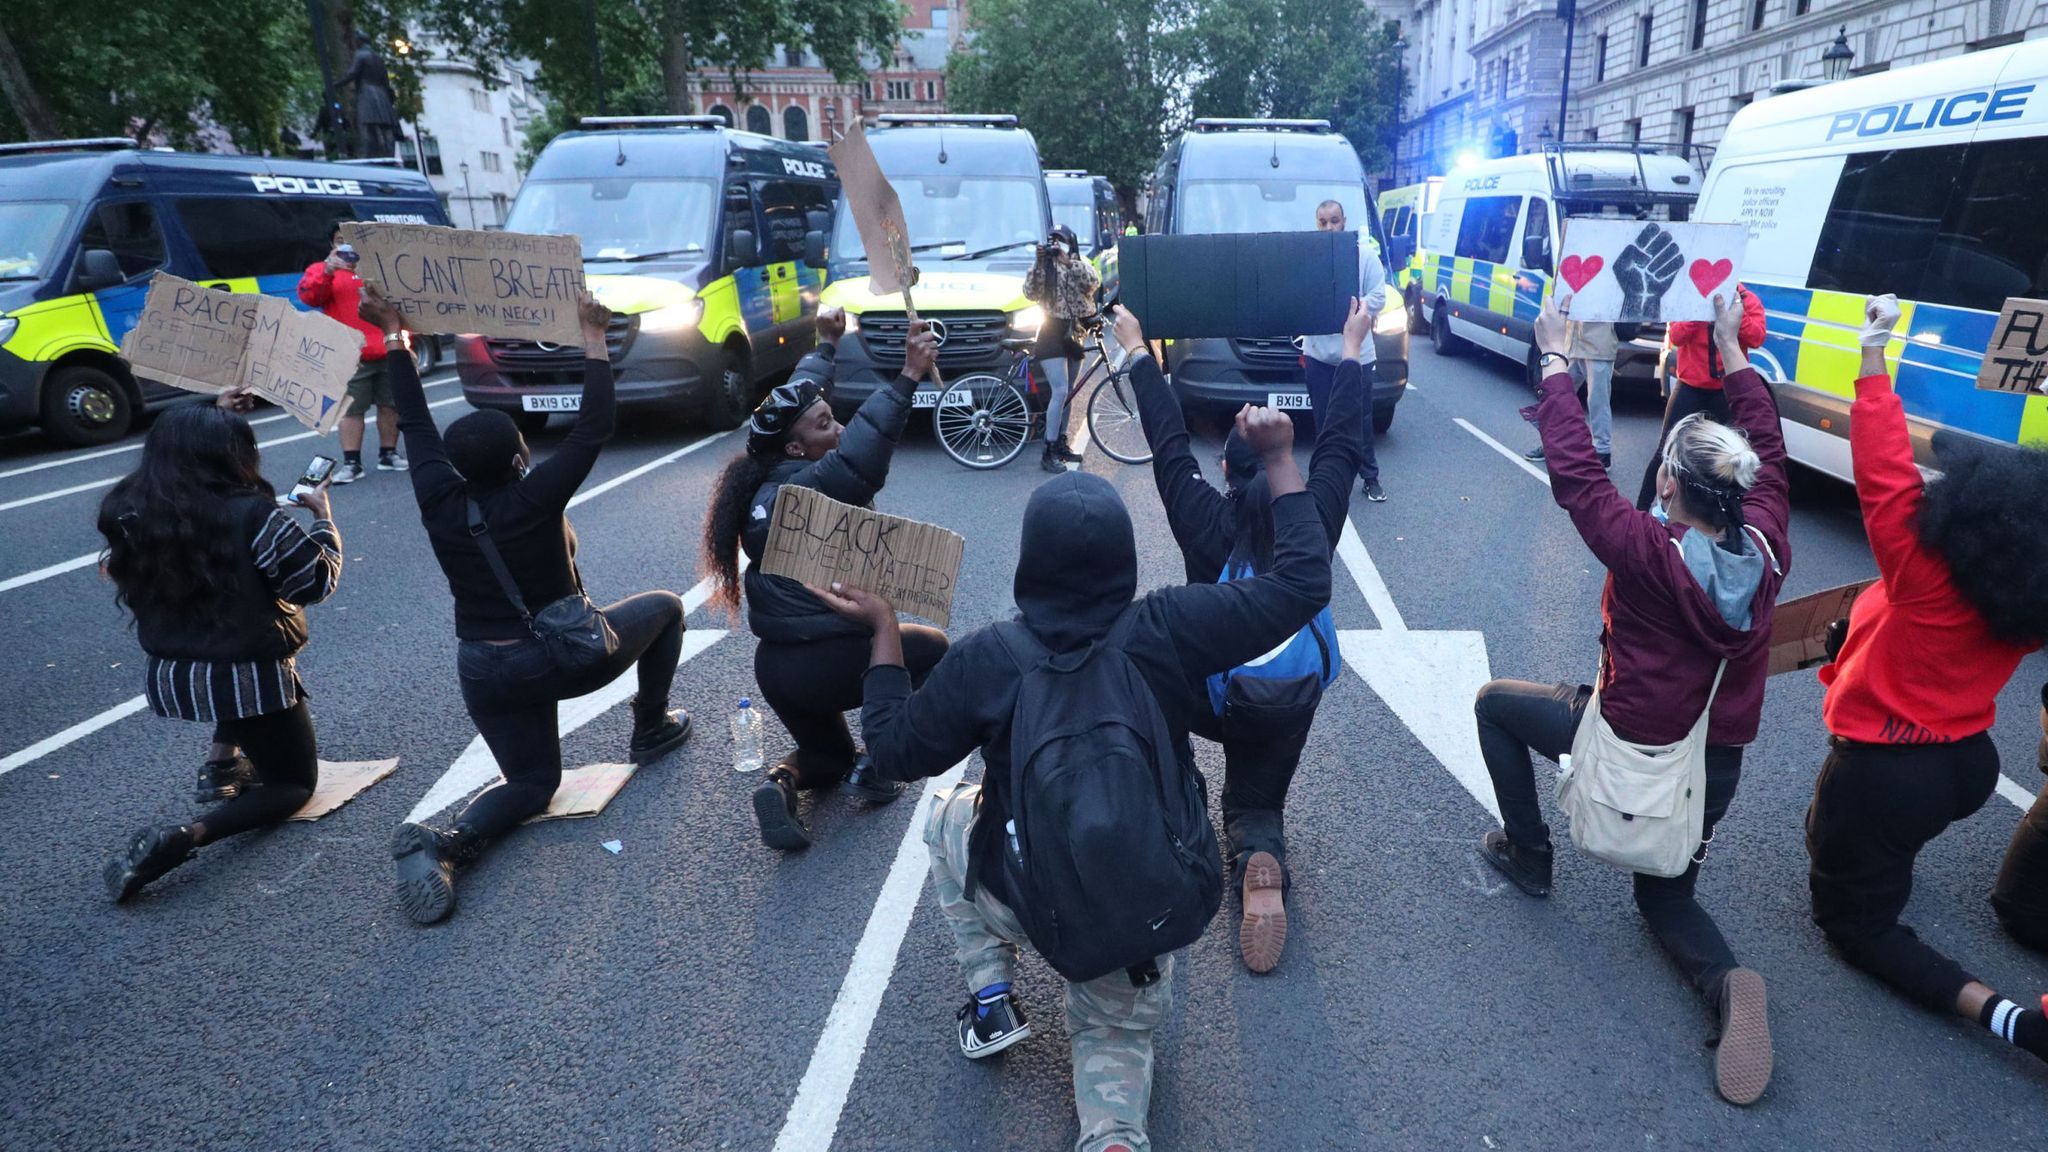 Black Lives Matter London protests: Scuffles with police mar ...